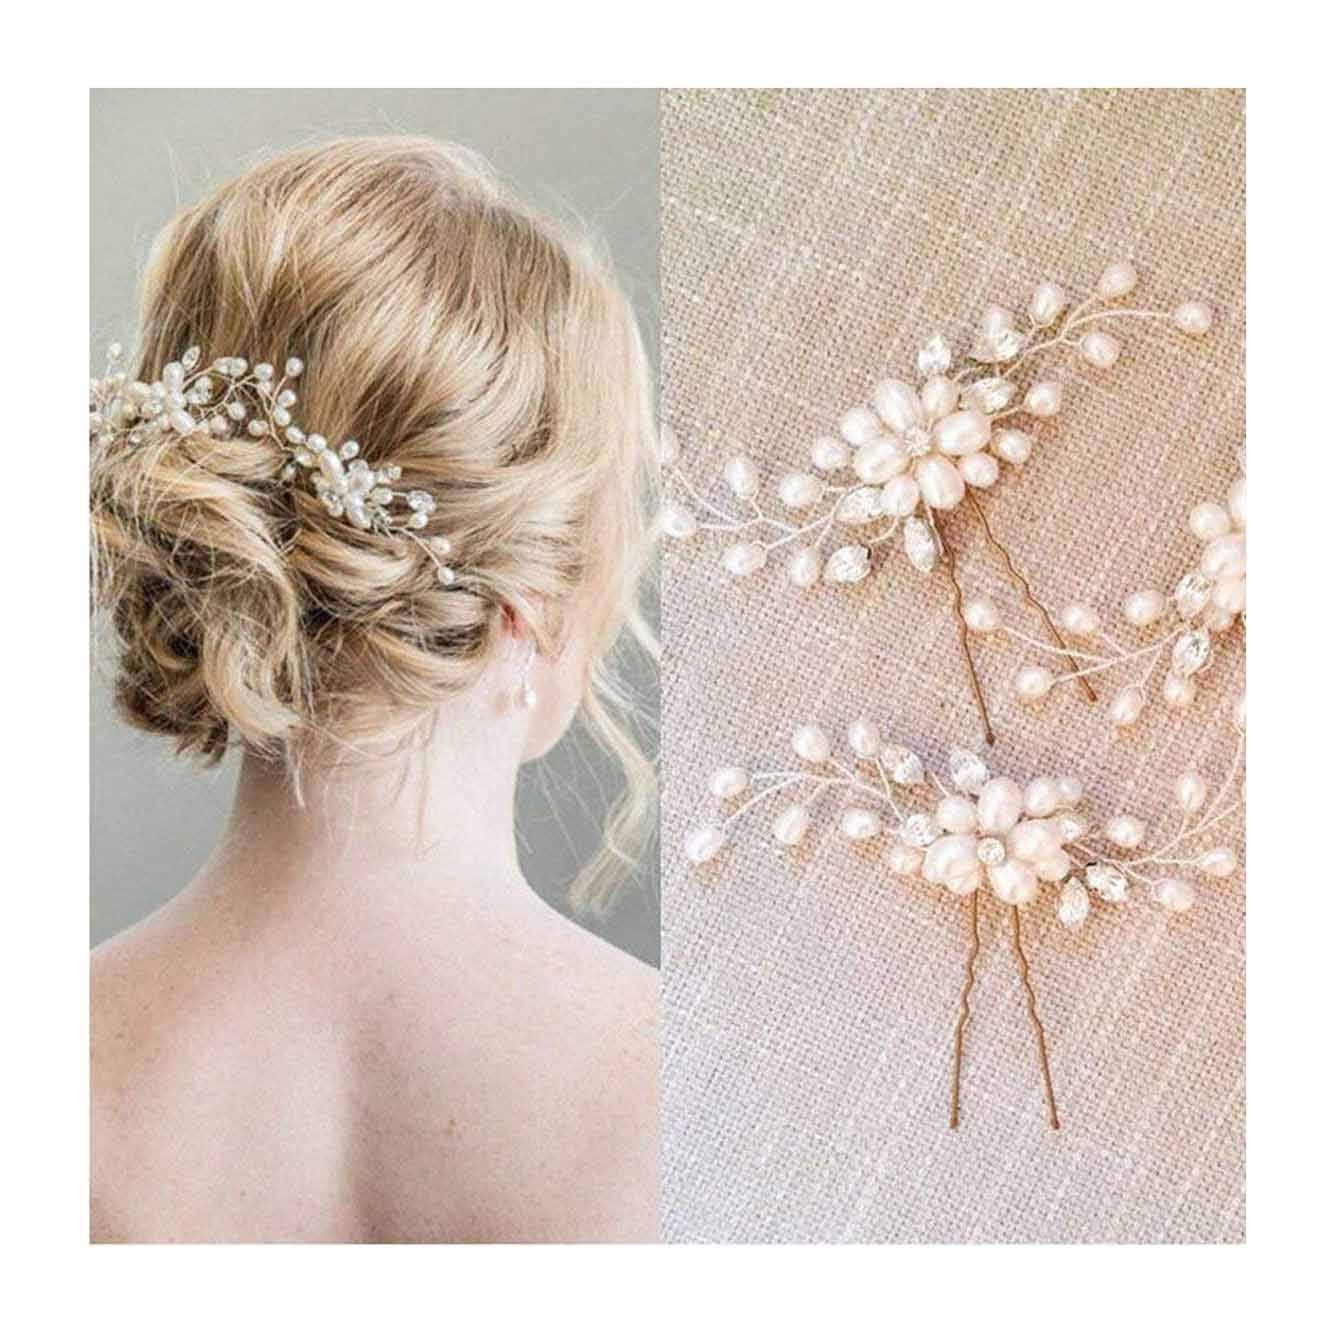 Unicra Wedding Hair Pins Hair Set Jewelry Decorative Bridal Hair Accessories for Brides and Bridesmaids Pack of 2 Gold